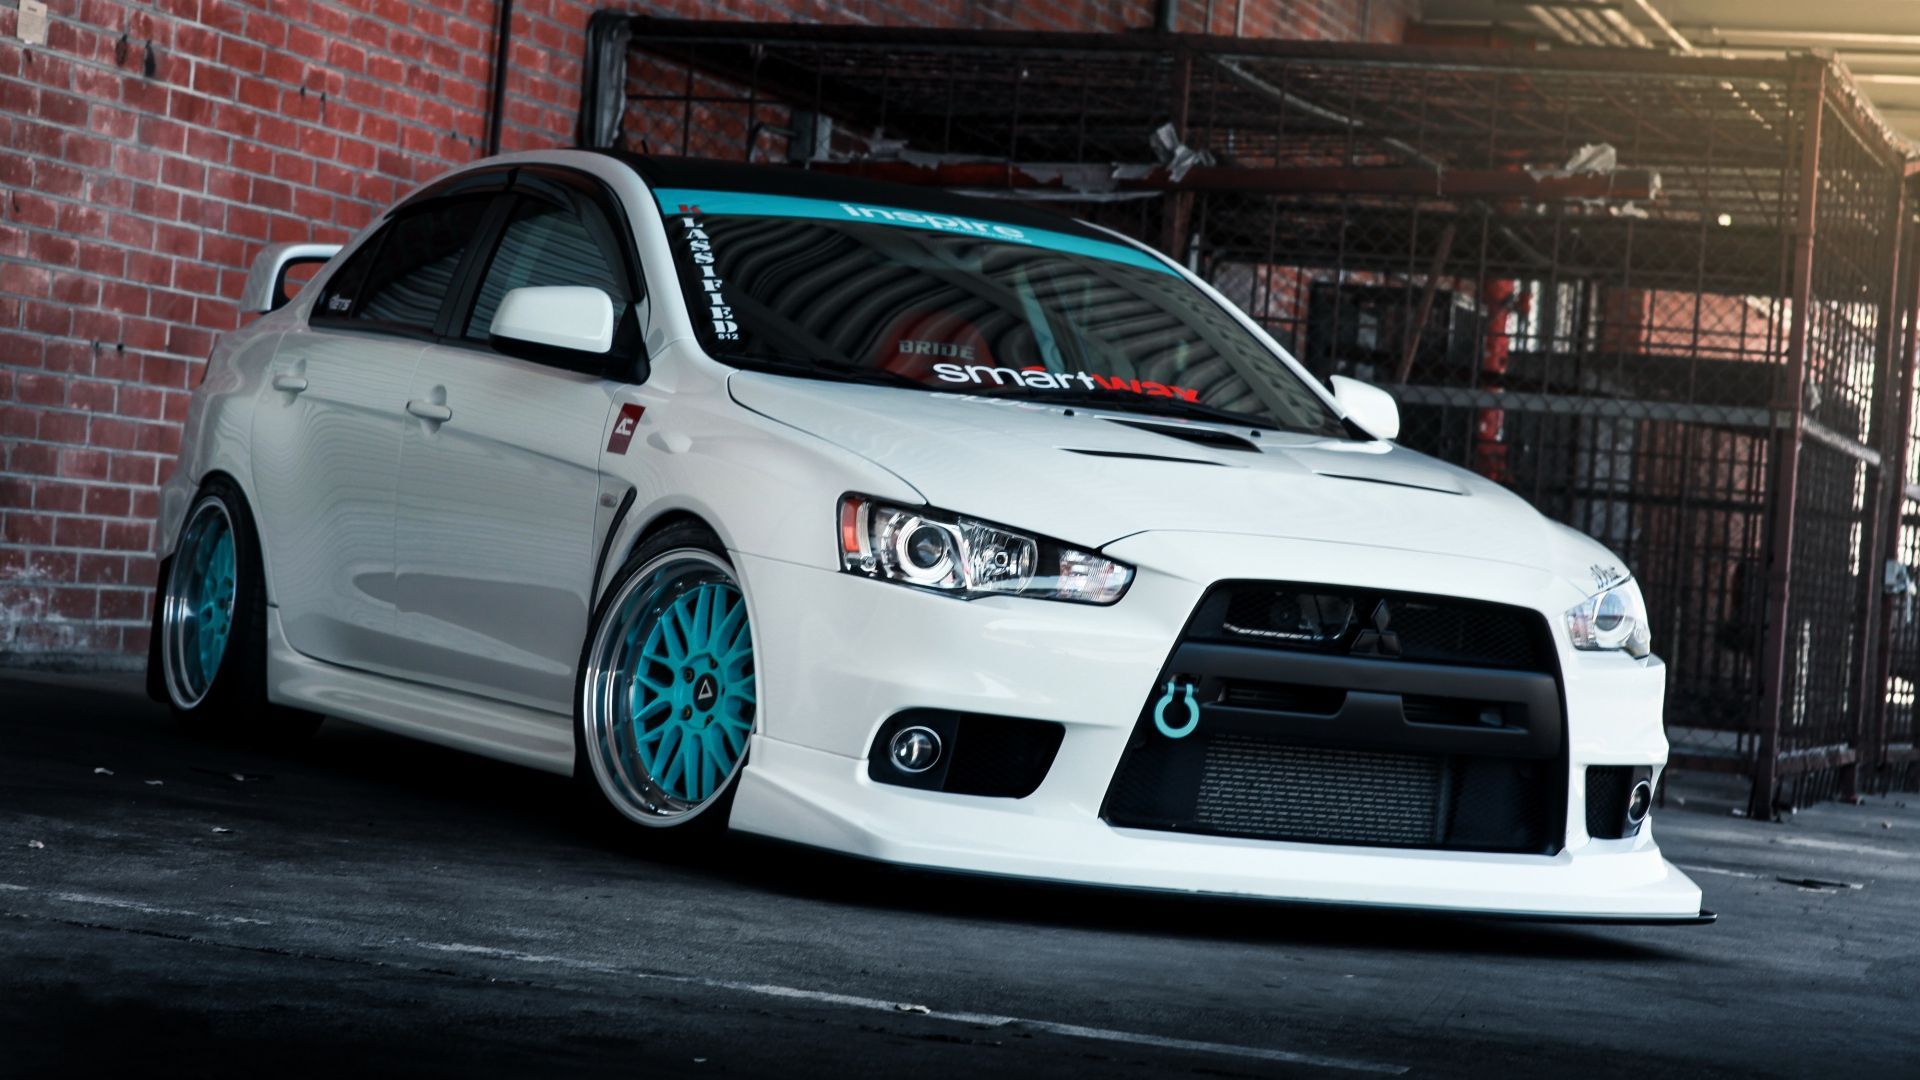 1920x1080 Wallpaper Mitsubishi Lancer Evo X Tune With Images